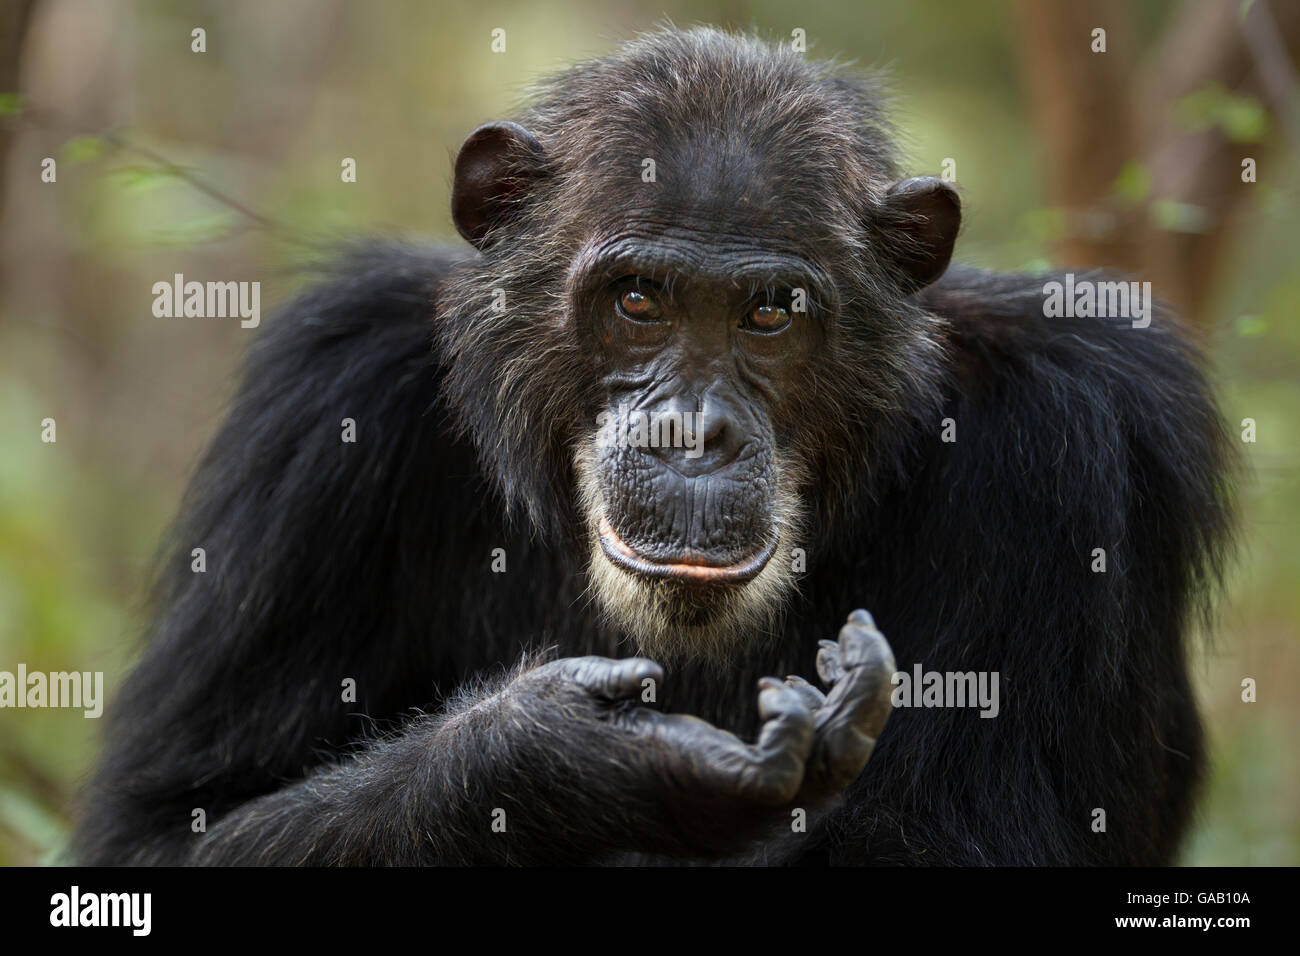 Eastern chimpanzee (Pan troglodytes schweinfurtheii) adult male 'Frodo' aged 35 years portrait. Gombe National - Stock Image